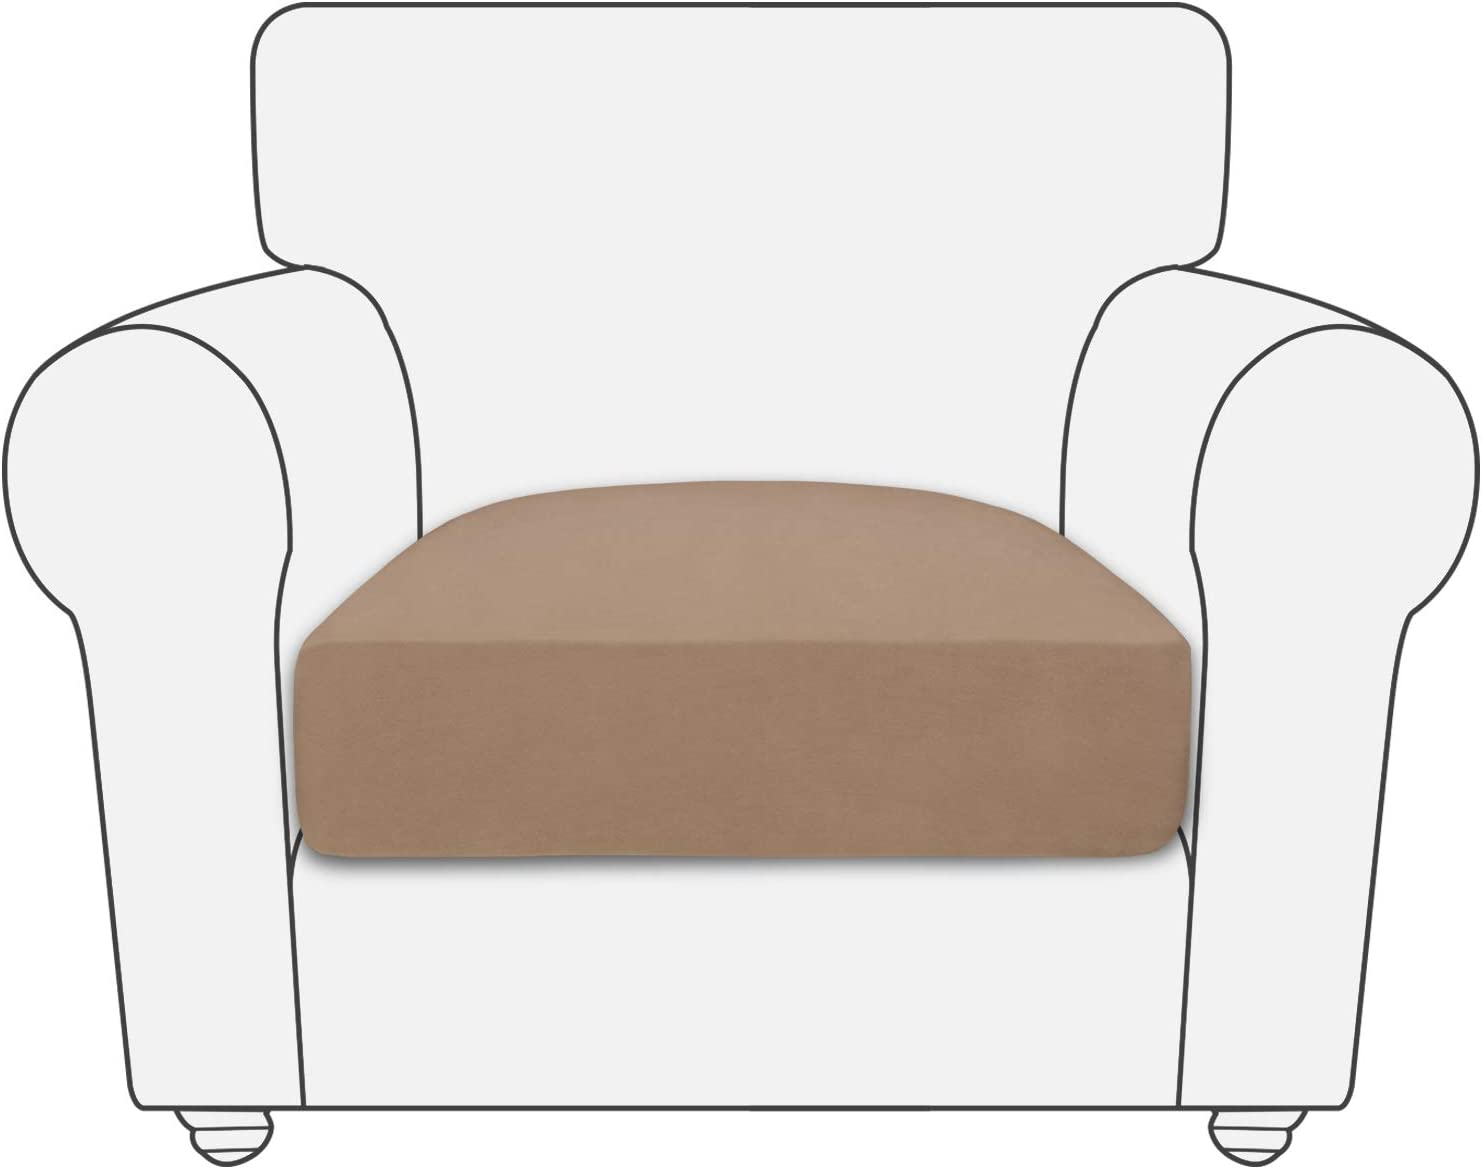 PureFit Stretch Fleece Non-Slip Sofa Couch Cushion Covers - Removable Chair Seat Covers for Dogs, Washable Elastic Furniture Slipcovers Protector for Kids and Pets (Chair, Camel)